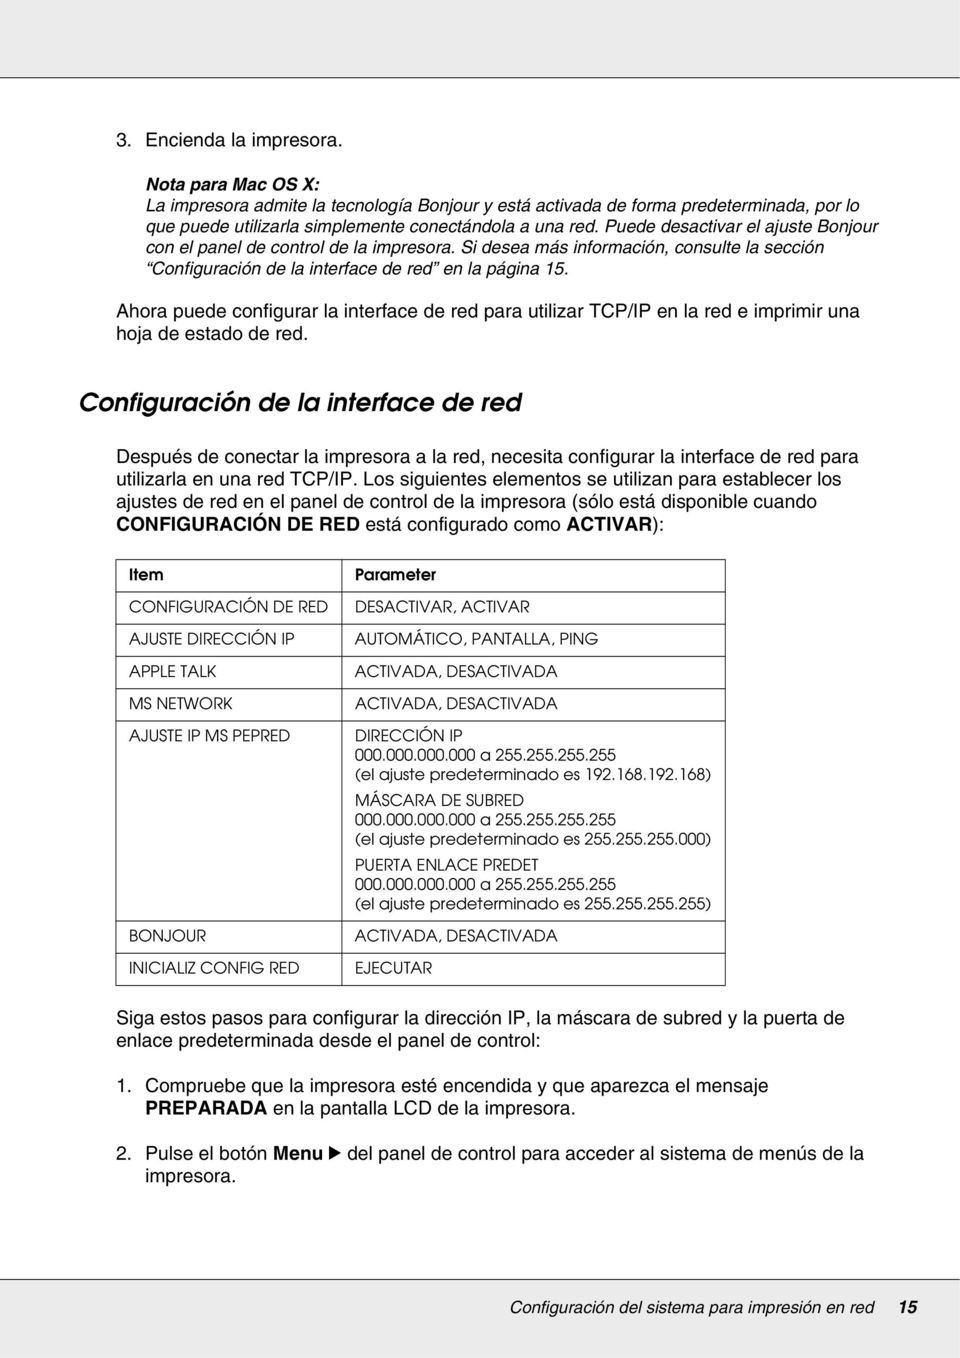 Ahora puede configurar la interface de red para utilizar TCP/IP en la red e imprimir una hoja de estado de red.